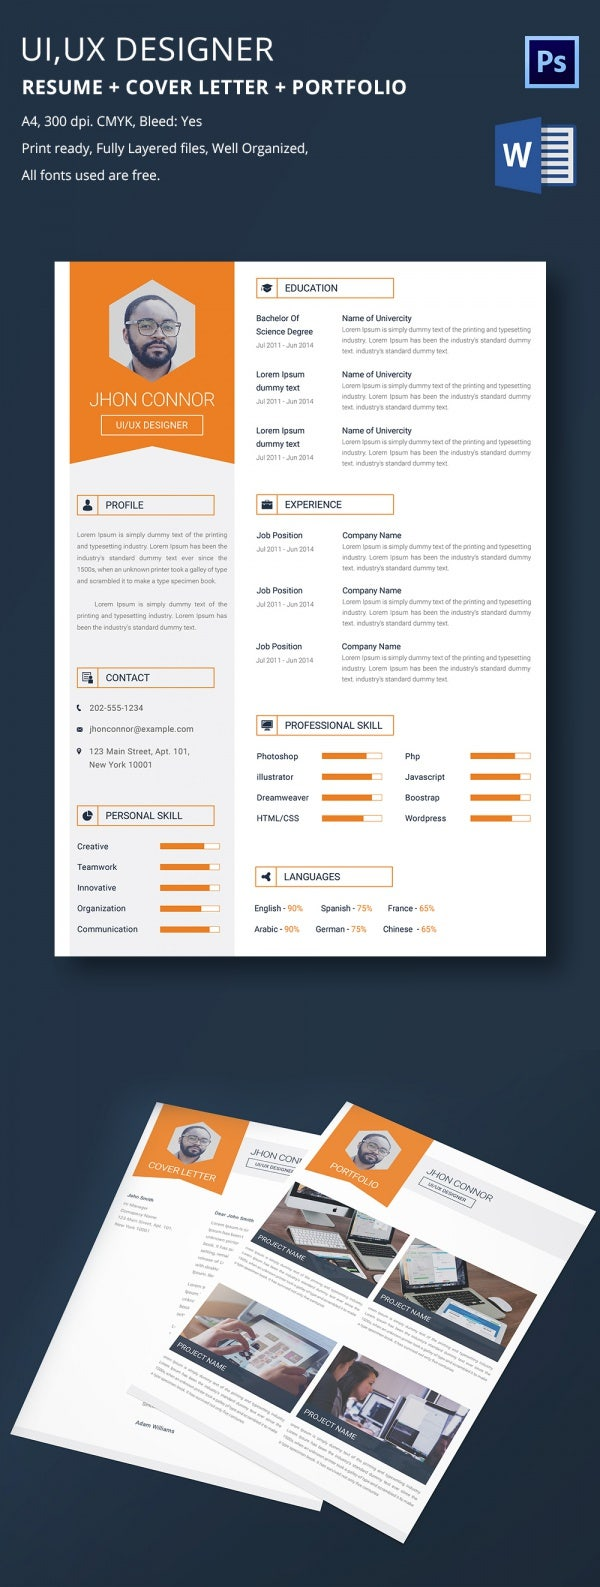 graphic designer resume cover letter portfolio template for